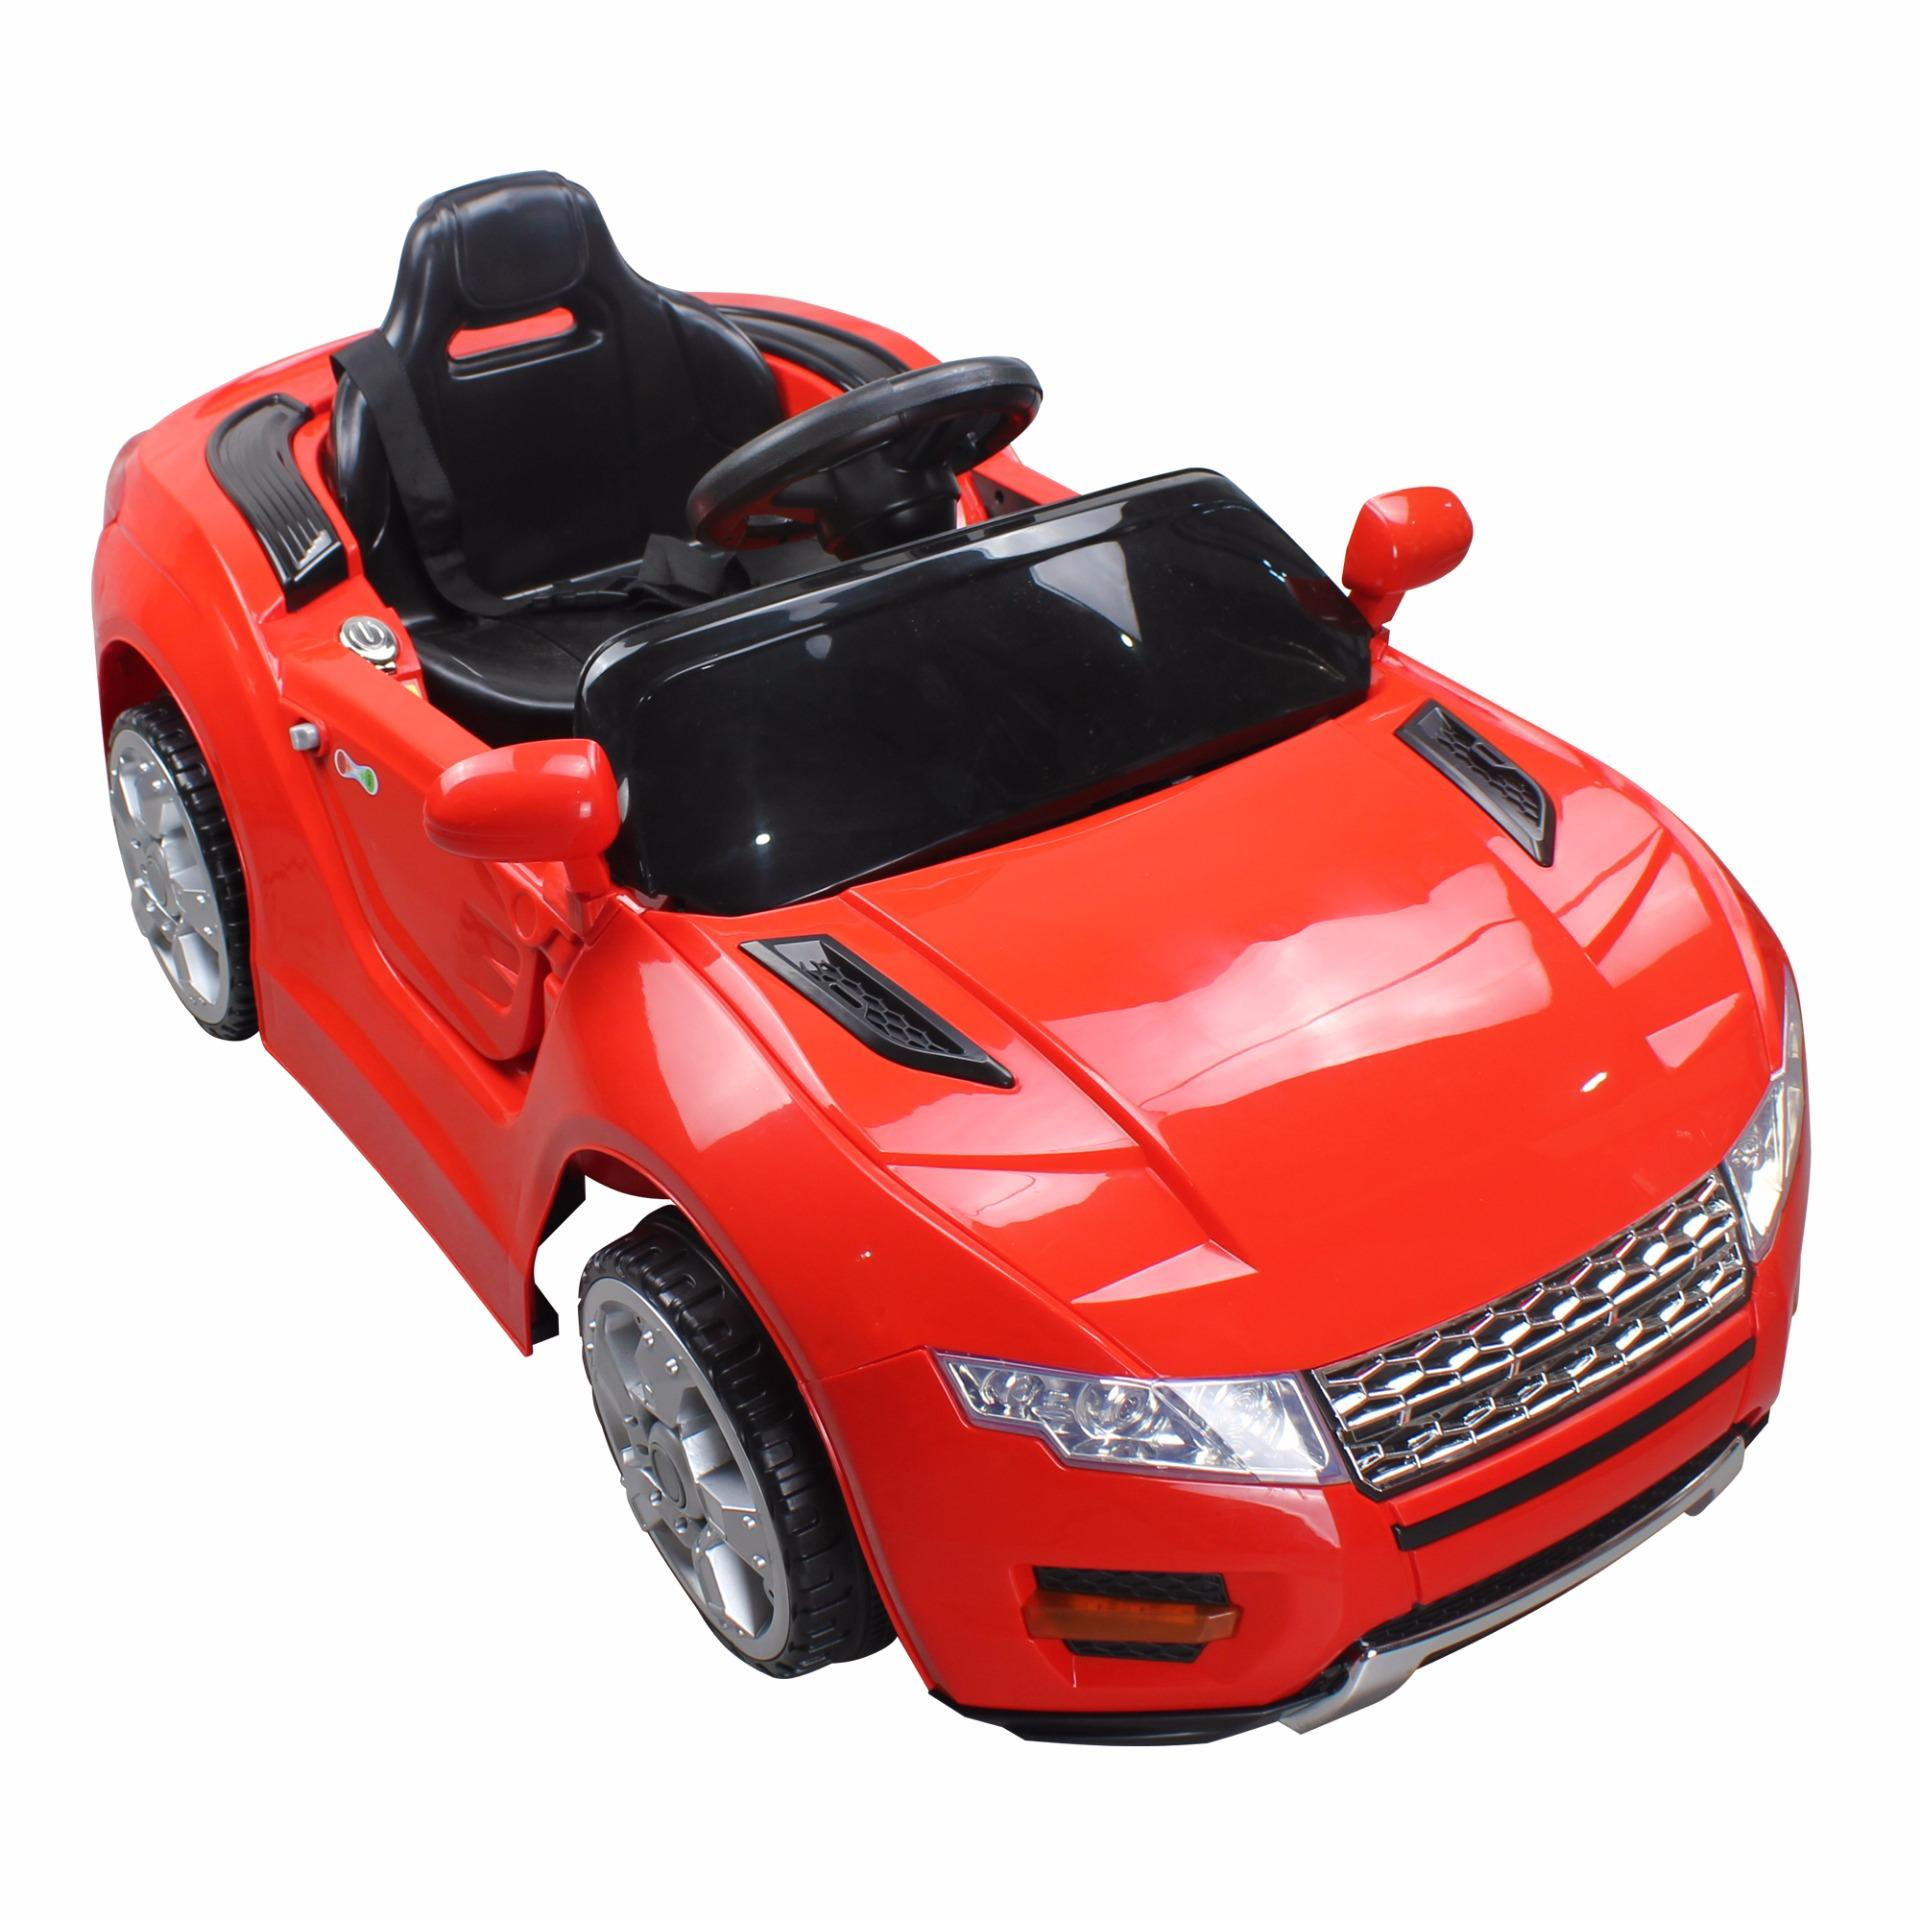 yd m6 kids electric ride on toy car 4 wheels red lazada ph